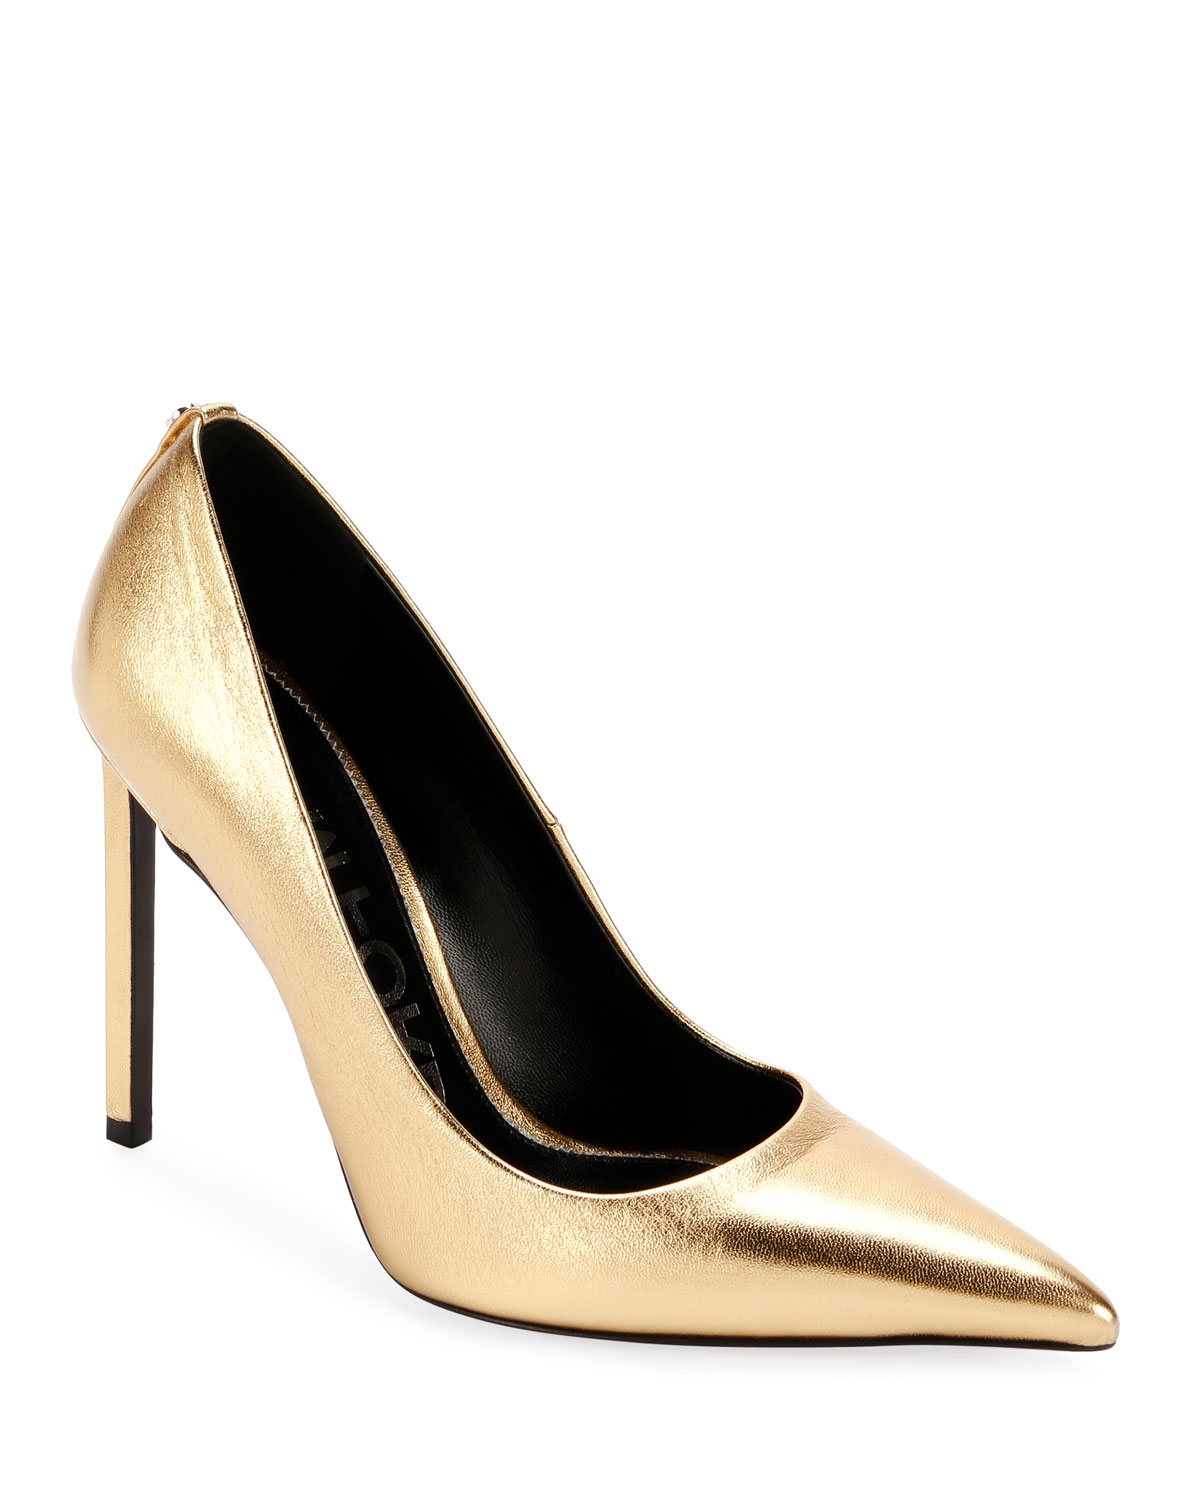 TOM FORD Laminated Leather Leather Laminated 105mm Pumps 72ed0d